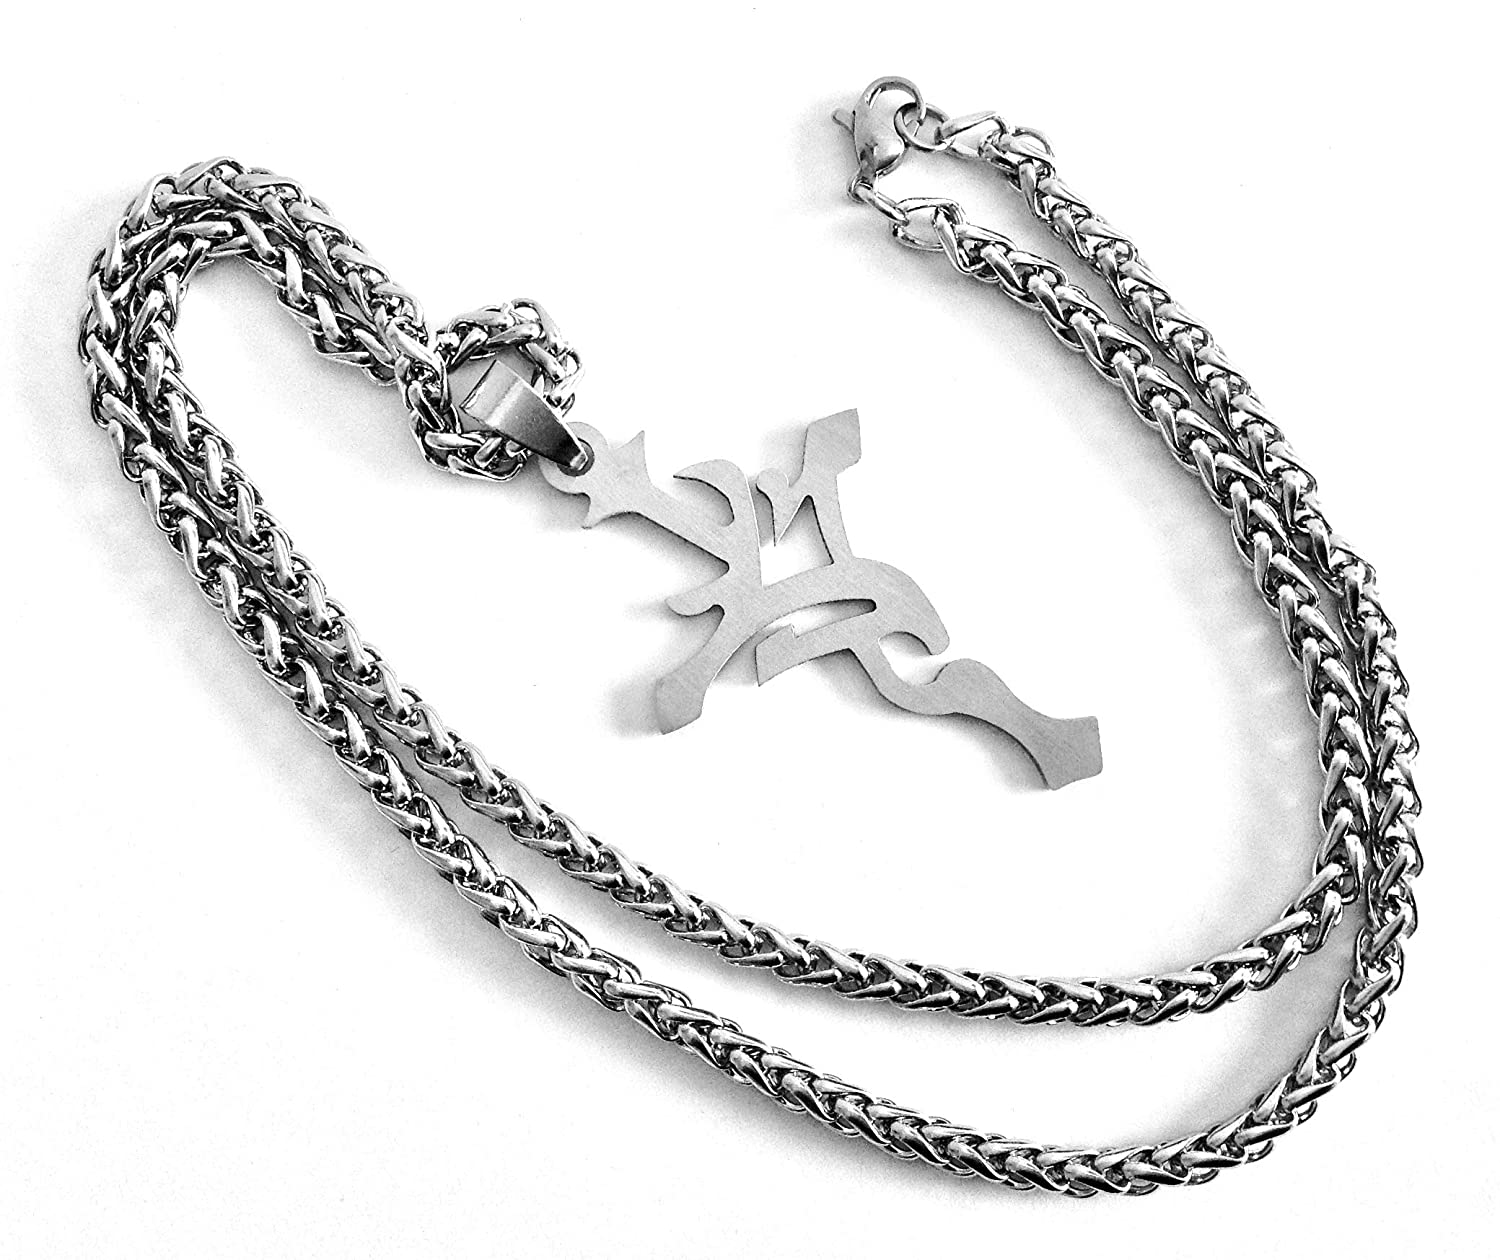 Tina Maries Jewelry Stainless Steel Thorn Cross /& 20 Necklace